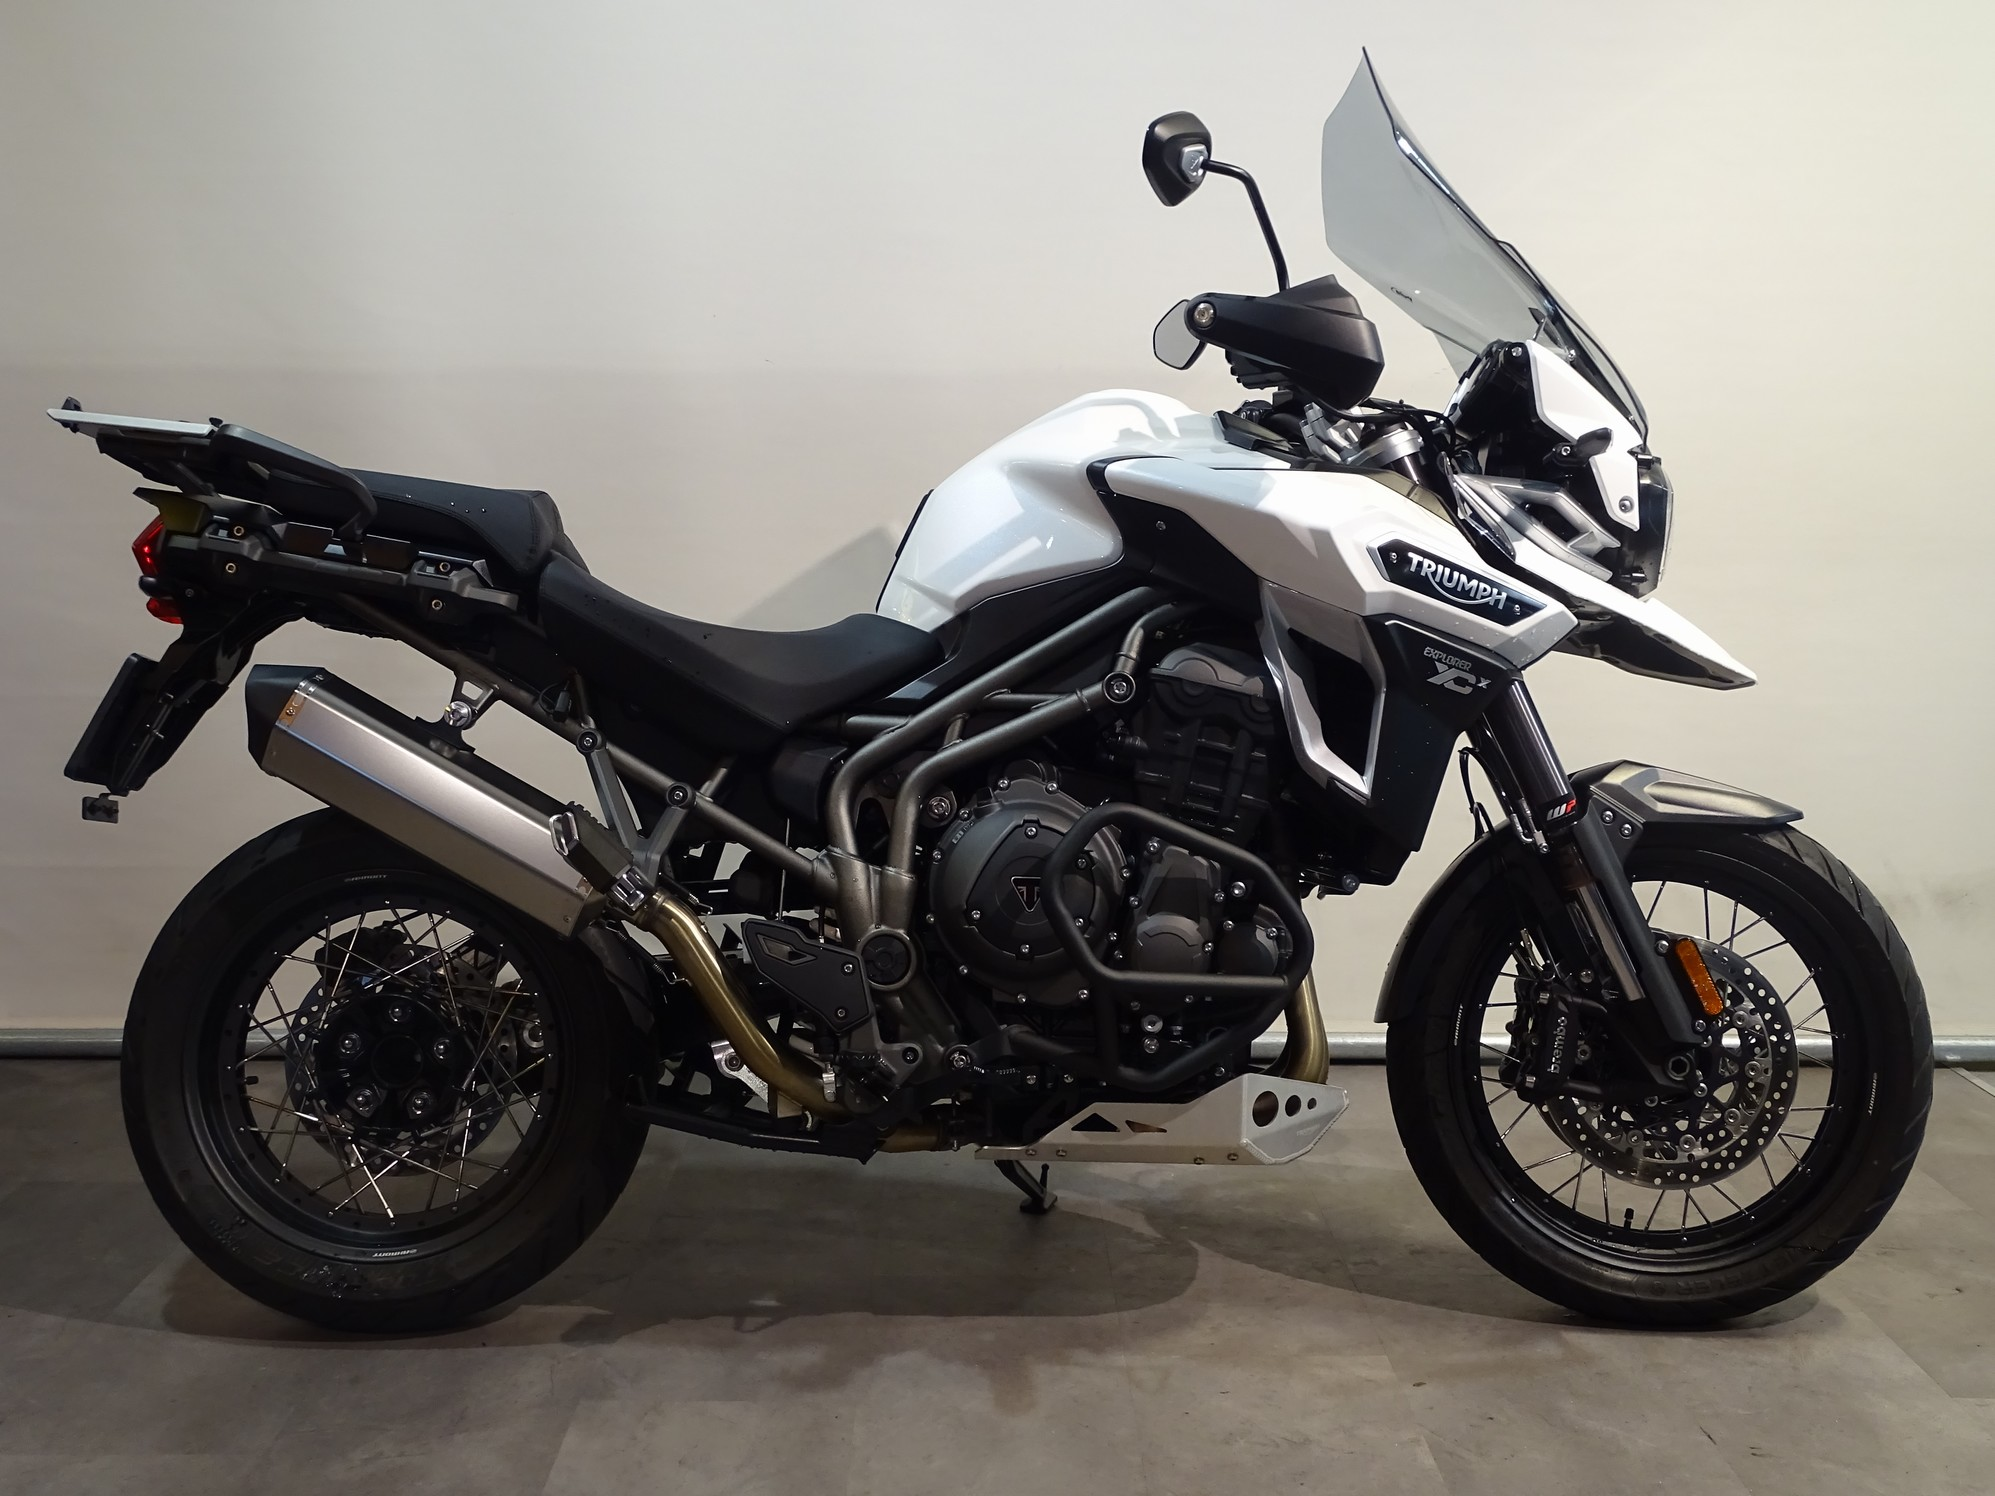 TRIUMPH - TIGER 1200 XCX EXPLORER ABS